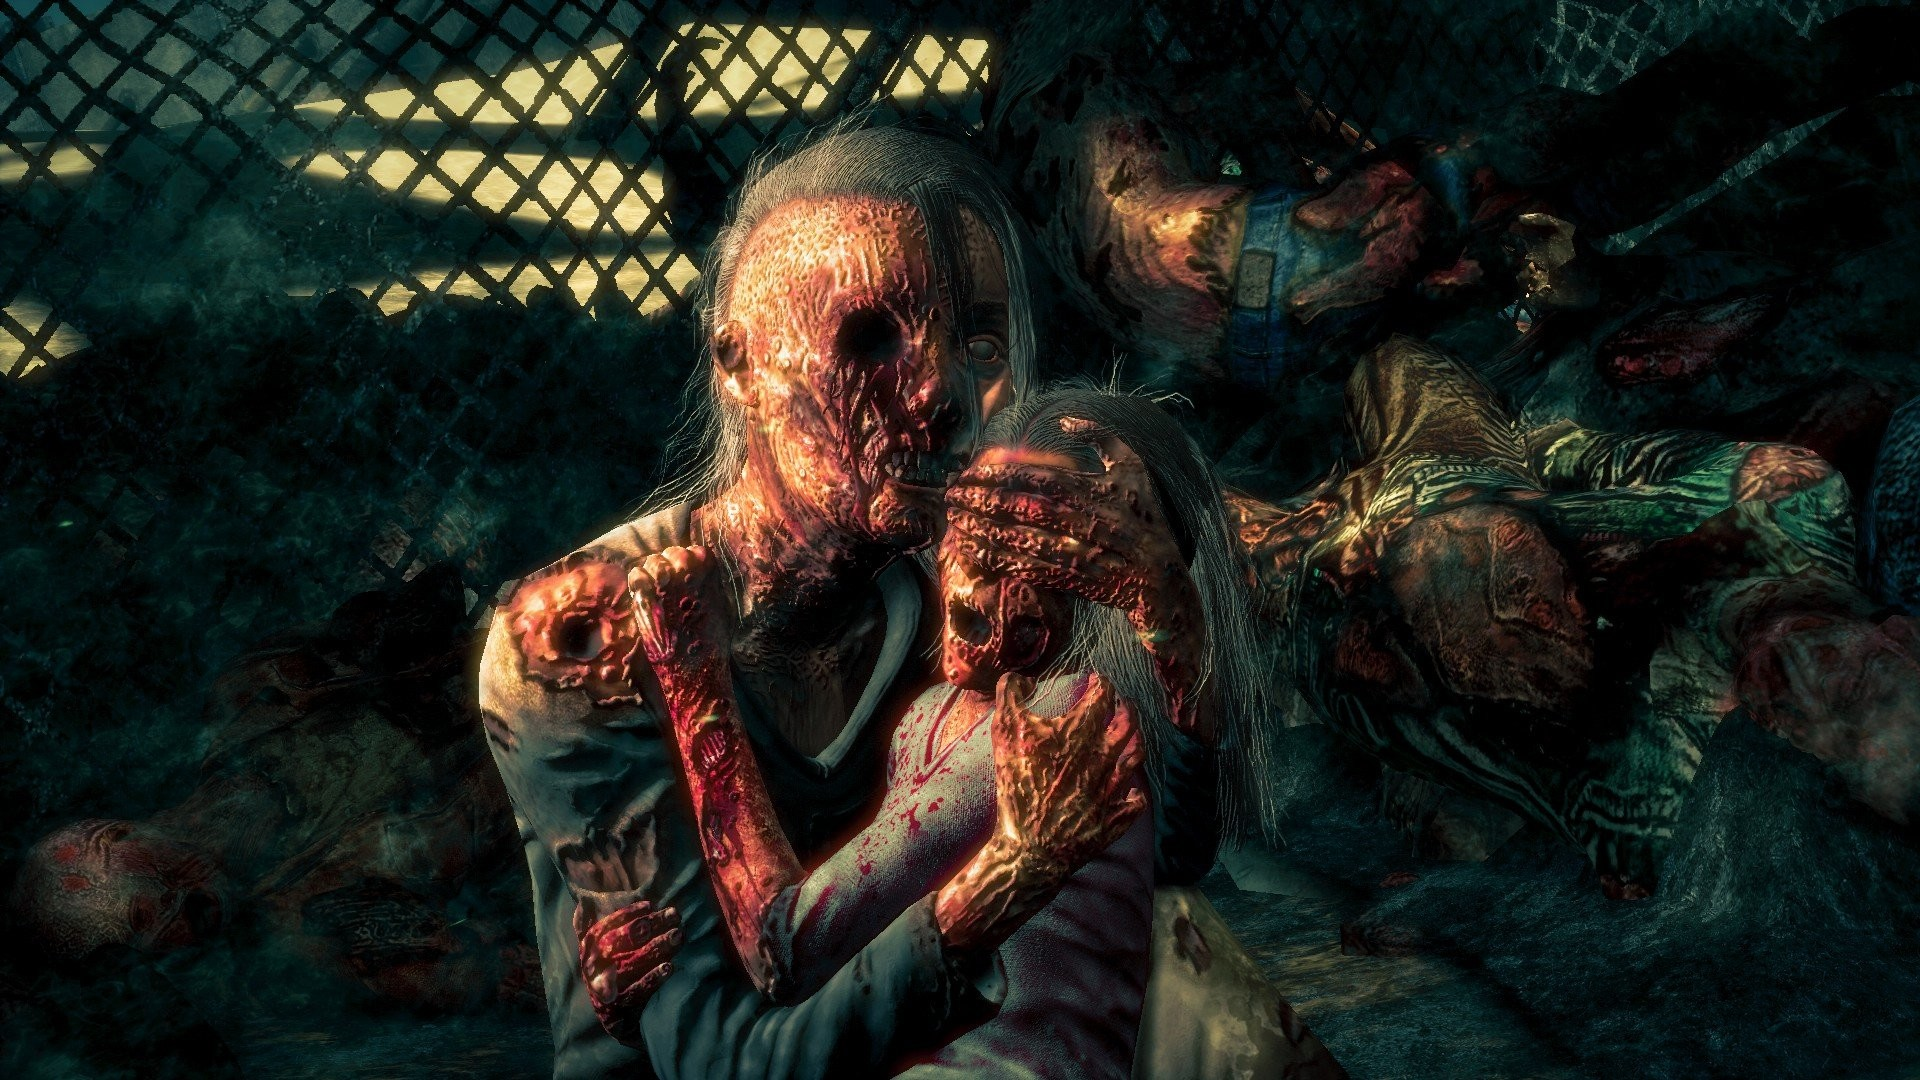 1920x1080 zombie apocalypse wallpaper - Google Search